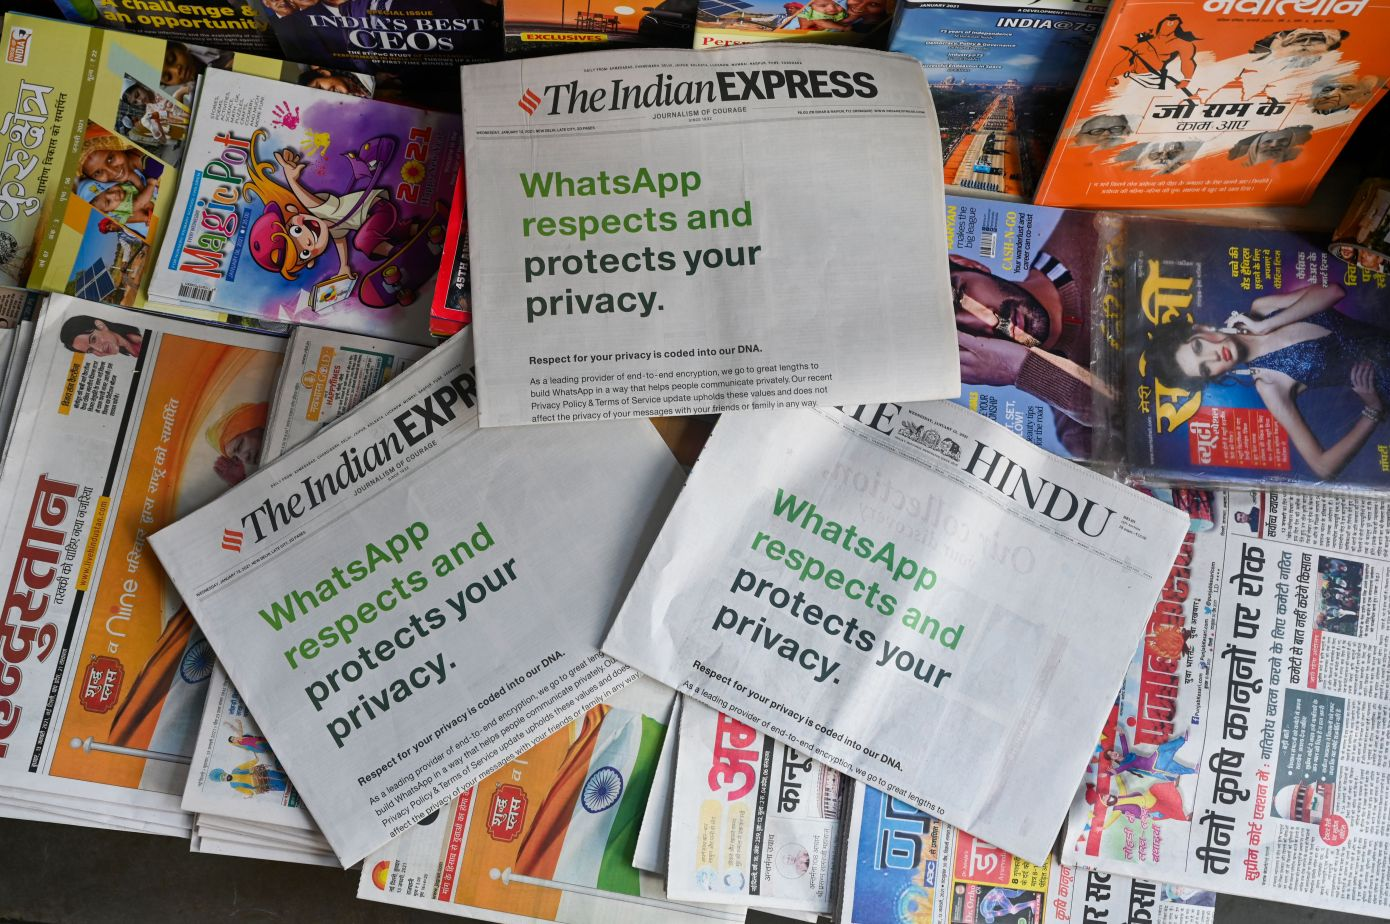 WhatsApp details what will happen to users who don't agree to privacy changes